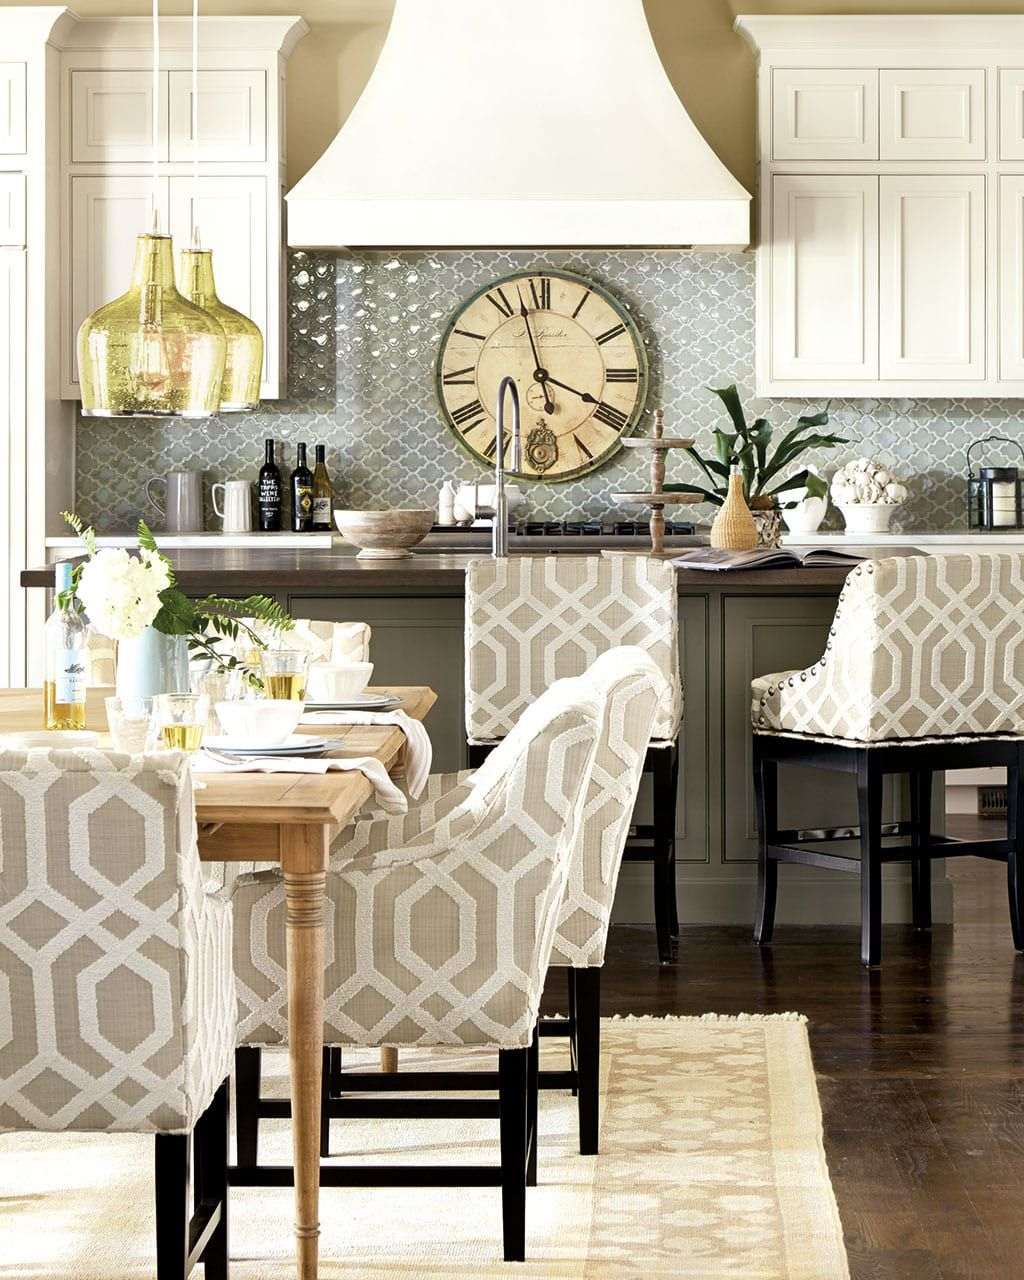 How To Pick The Right Dining Chair Size And Style How To Decorate Dining Chairs Dining Room Chairs Dining Table Chairs